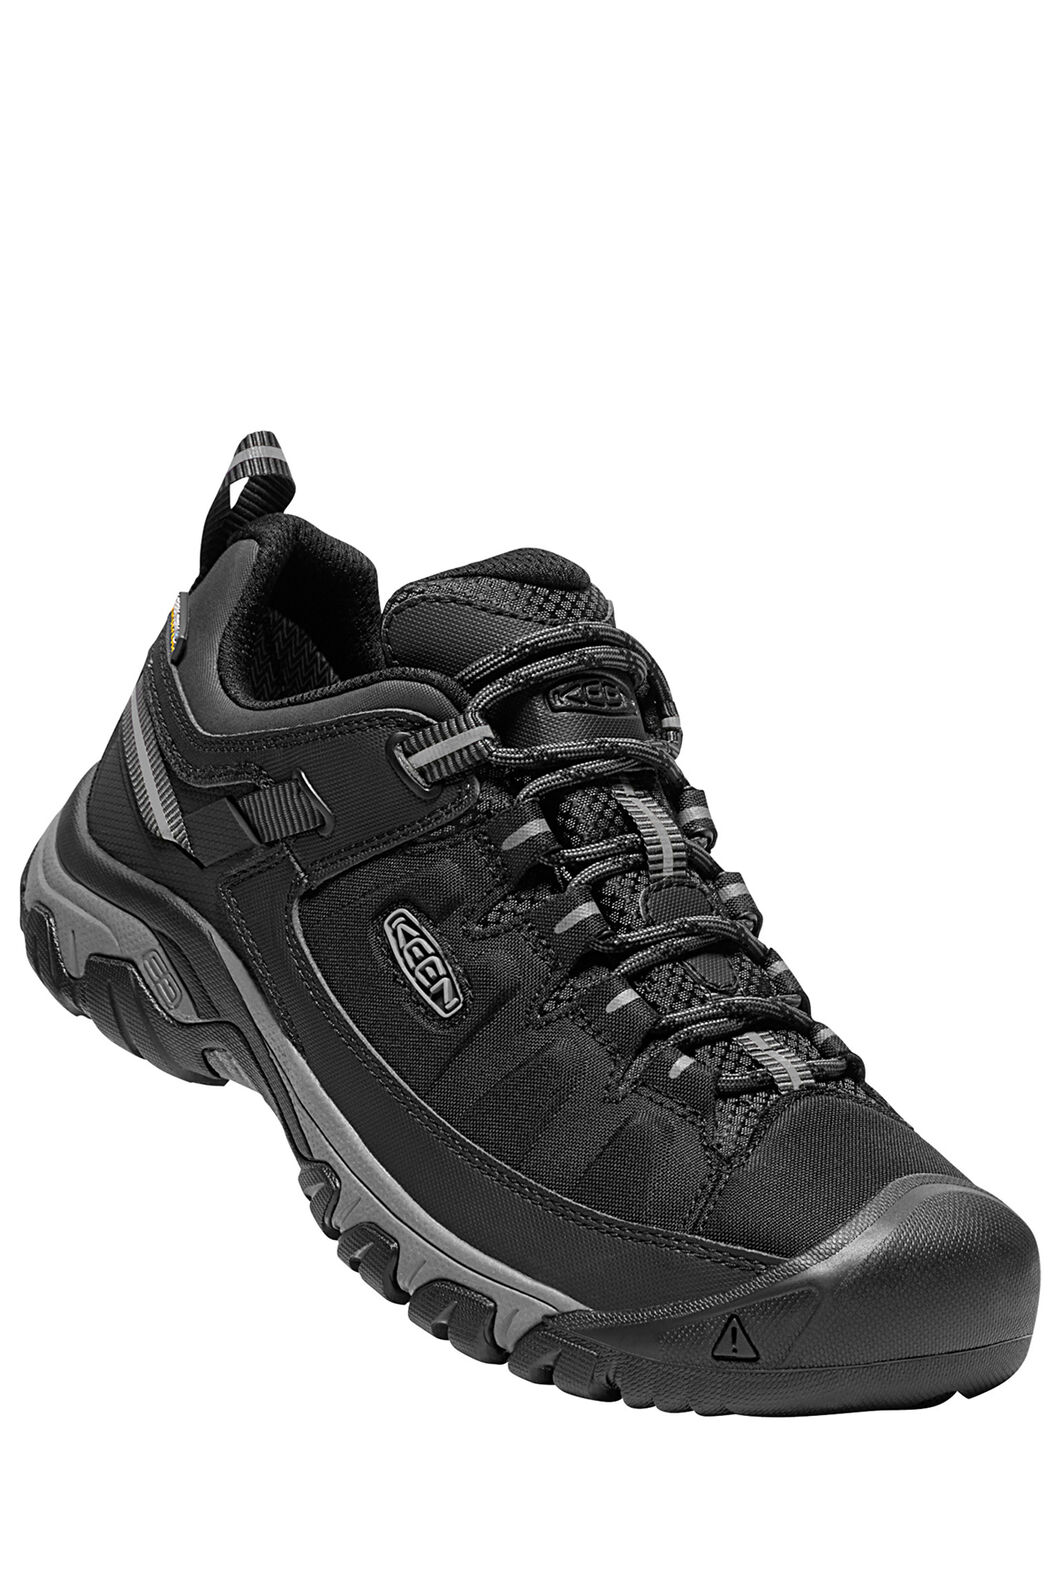 Keen Targhee EXP WP Hiking Shoes - Men's, Black/Steel Grey, hi-res